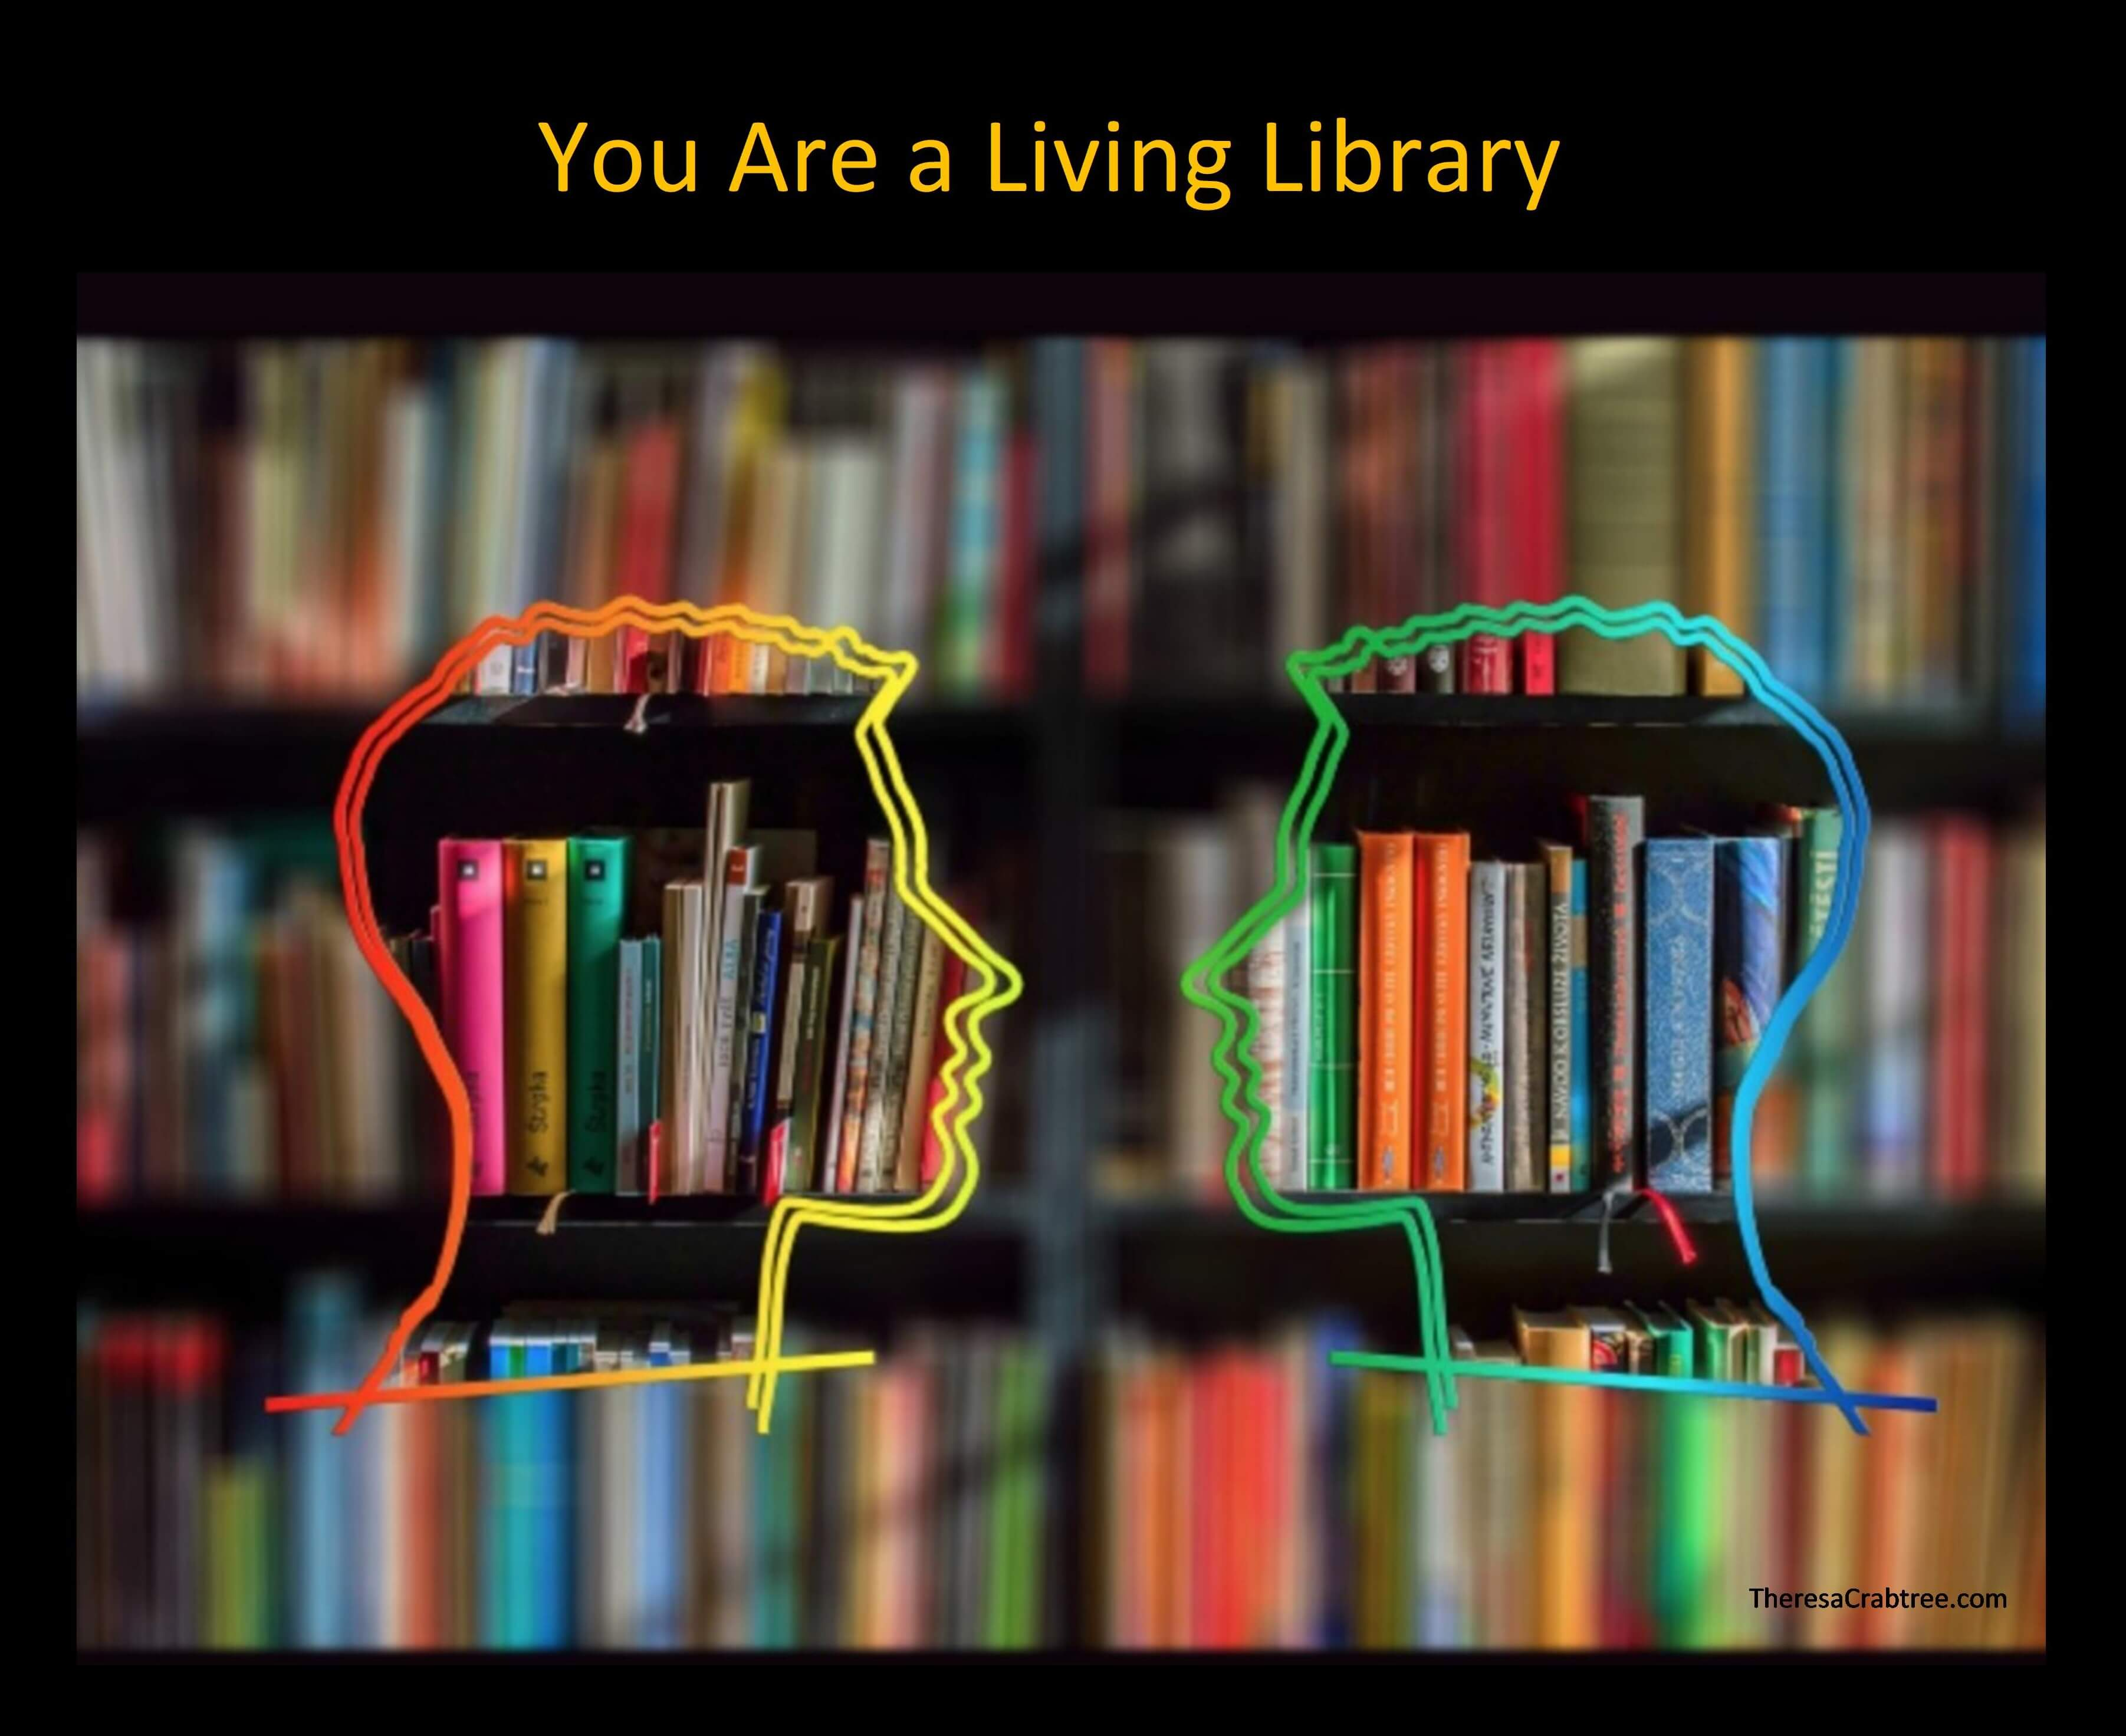 You Are a Living Library